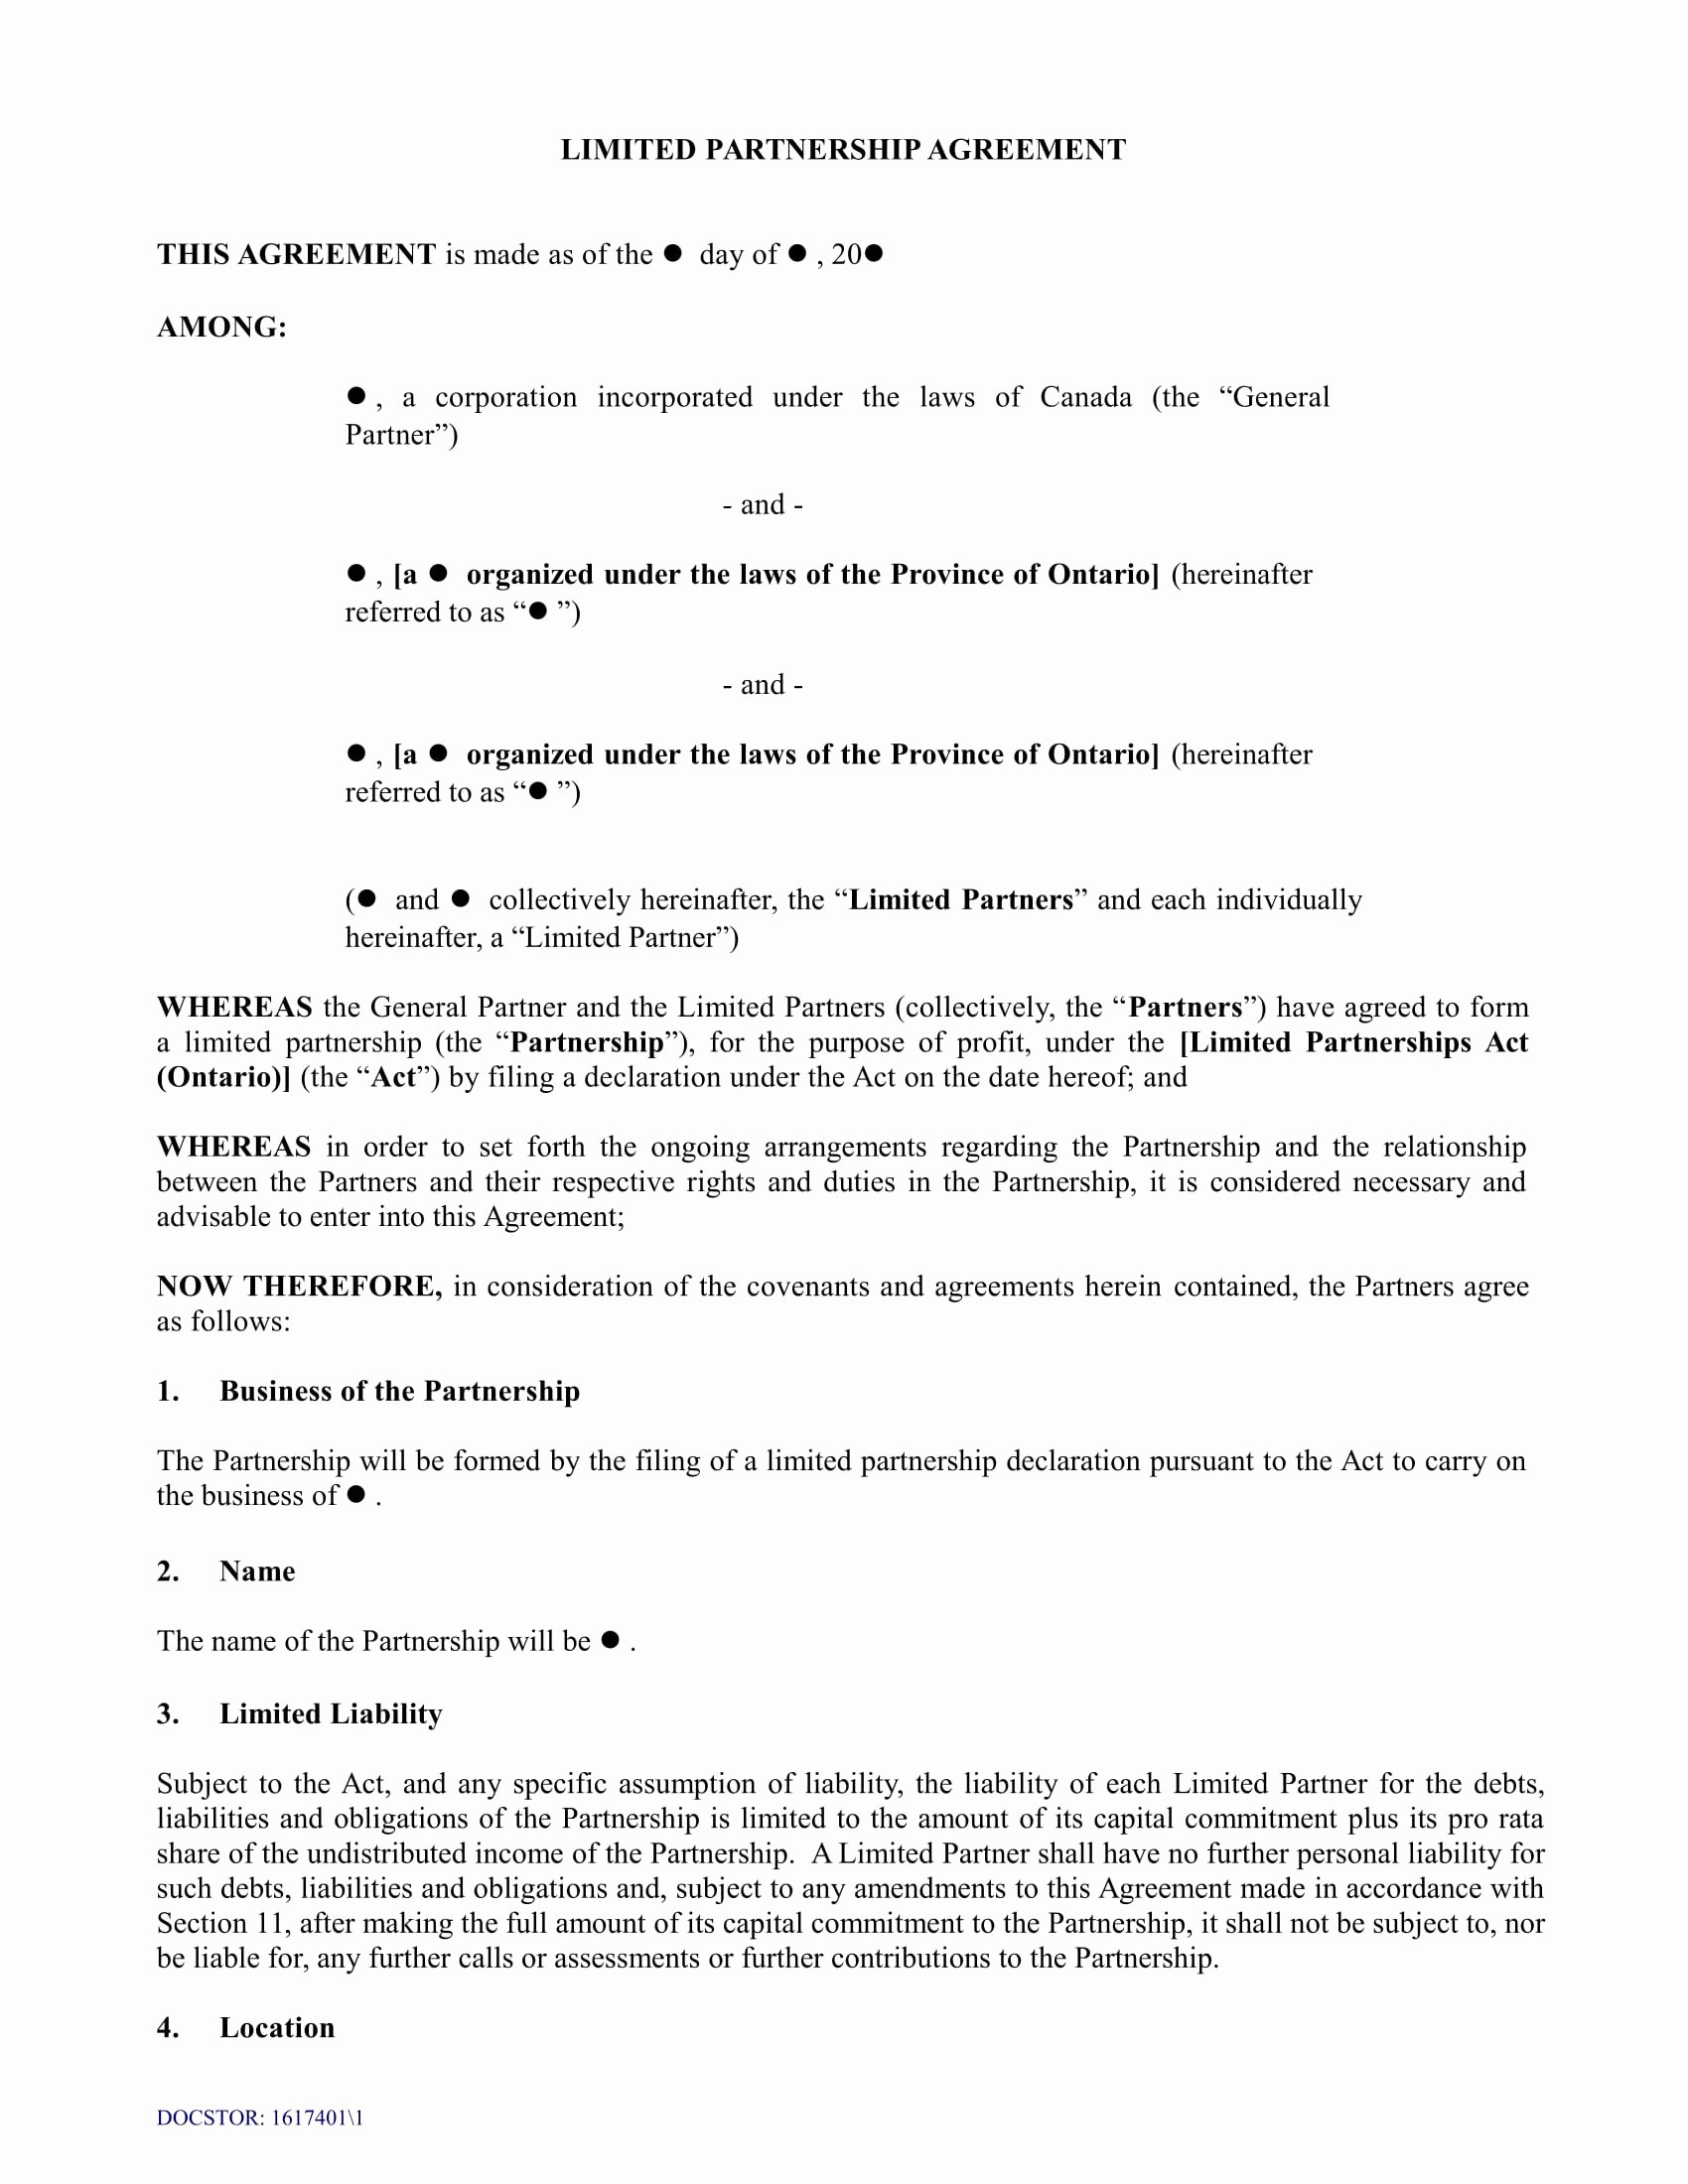 Limited Partnership Agreement Template Awesome 4 Limited Partnership Agreement forms Word Pdf